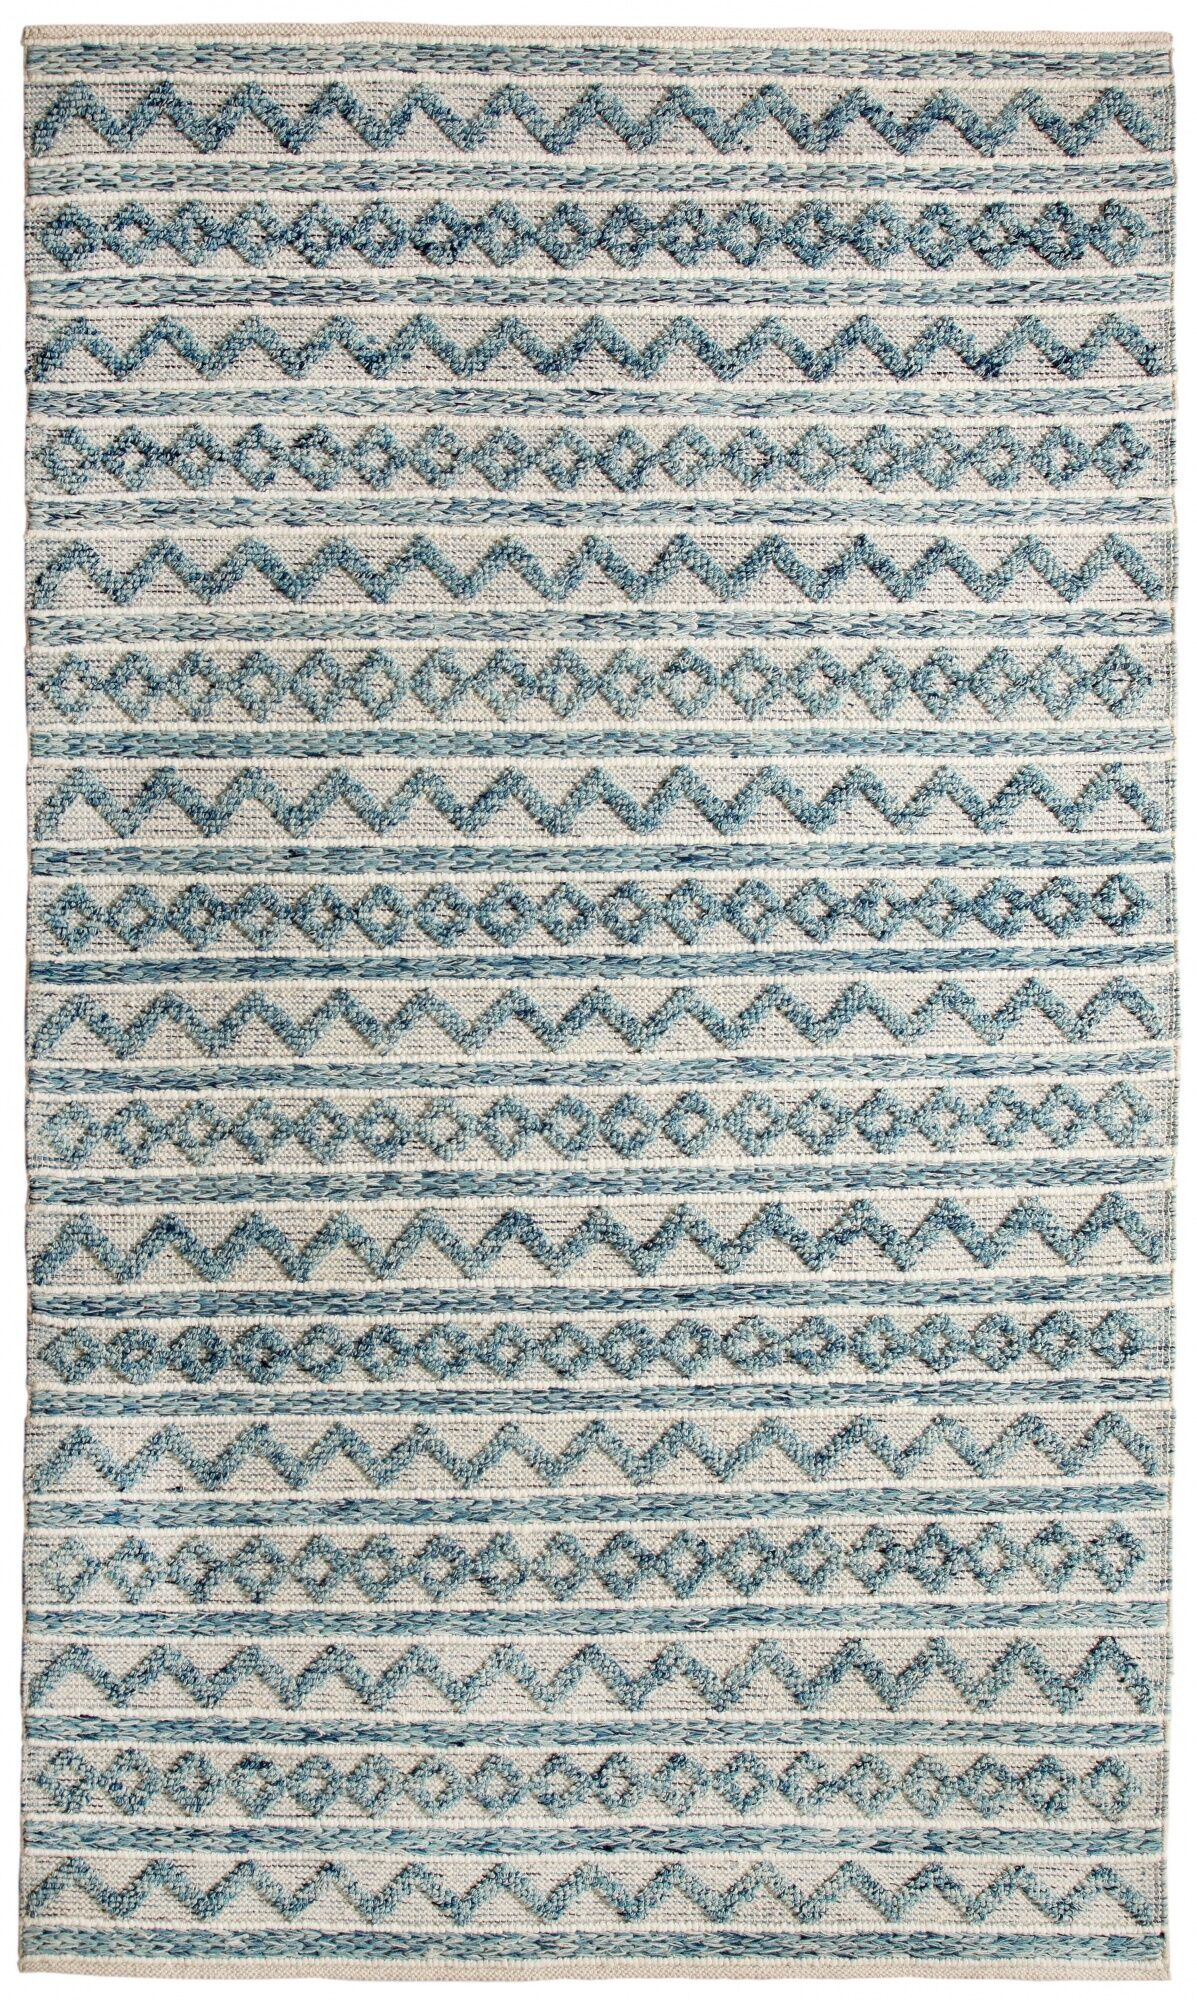 Edwa Hand-Woven Teal/Ivory Area Rug Rug Size: Rectangle 2' x 4'